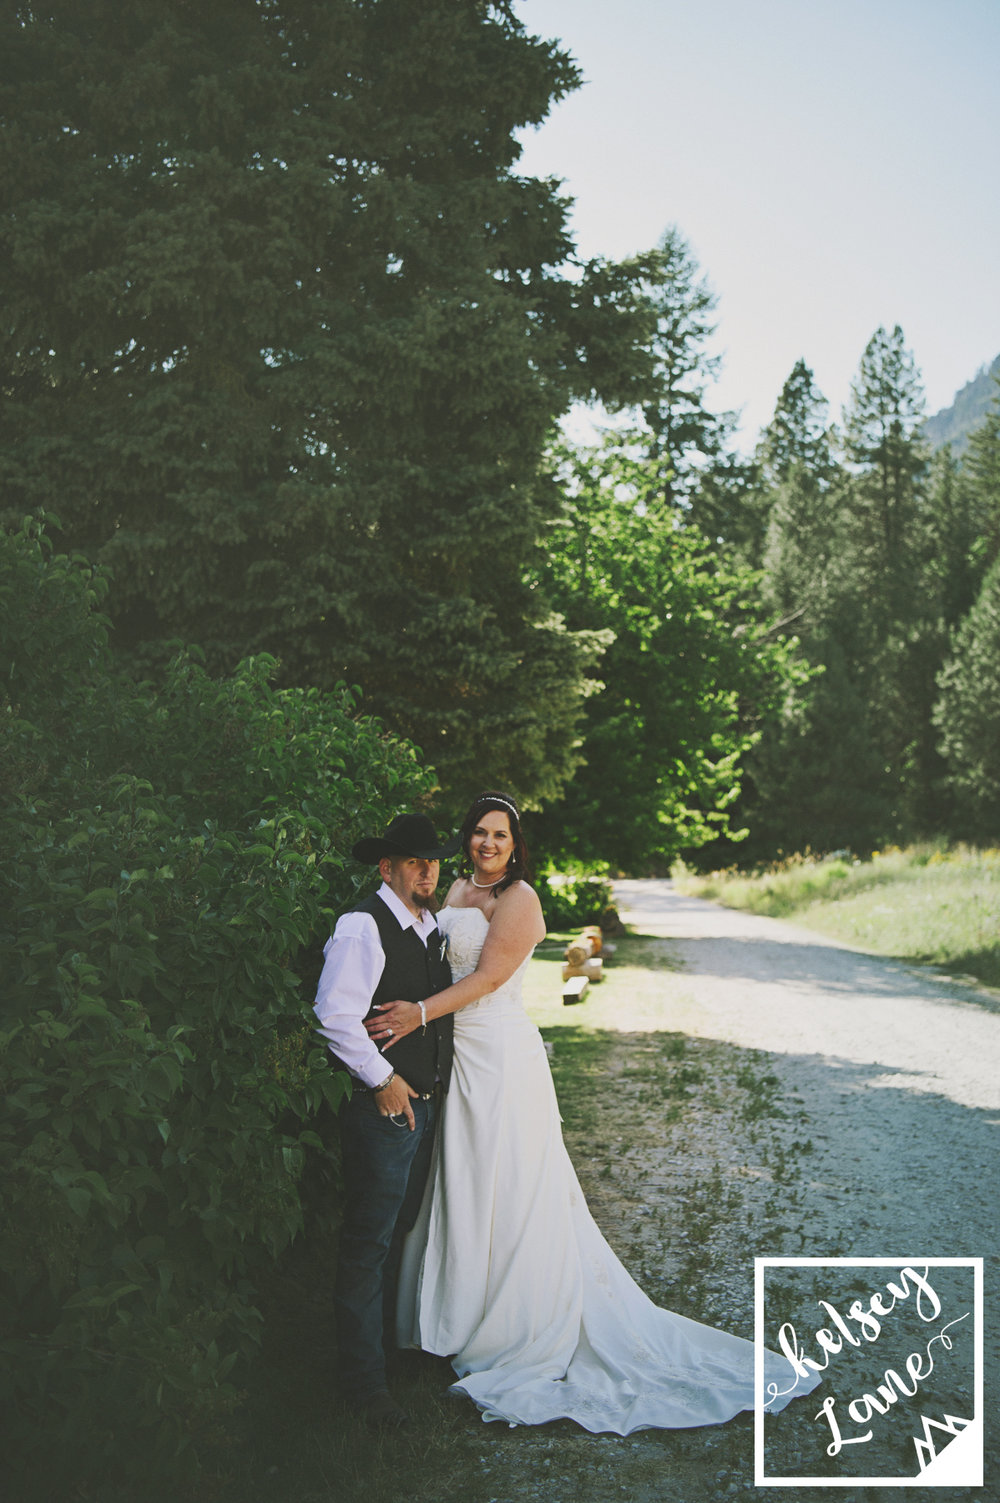 Dawn McCrimmon + Christopher Johnson_Leavenworth Wedding_Kelsey Lane Photography-3006 copy.jpg